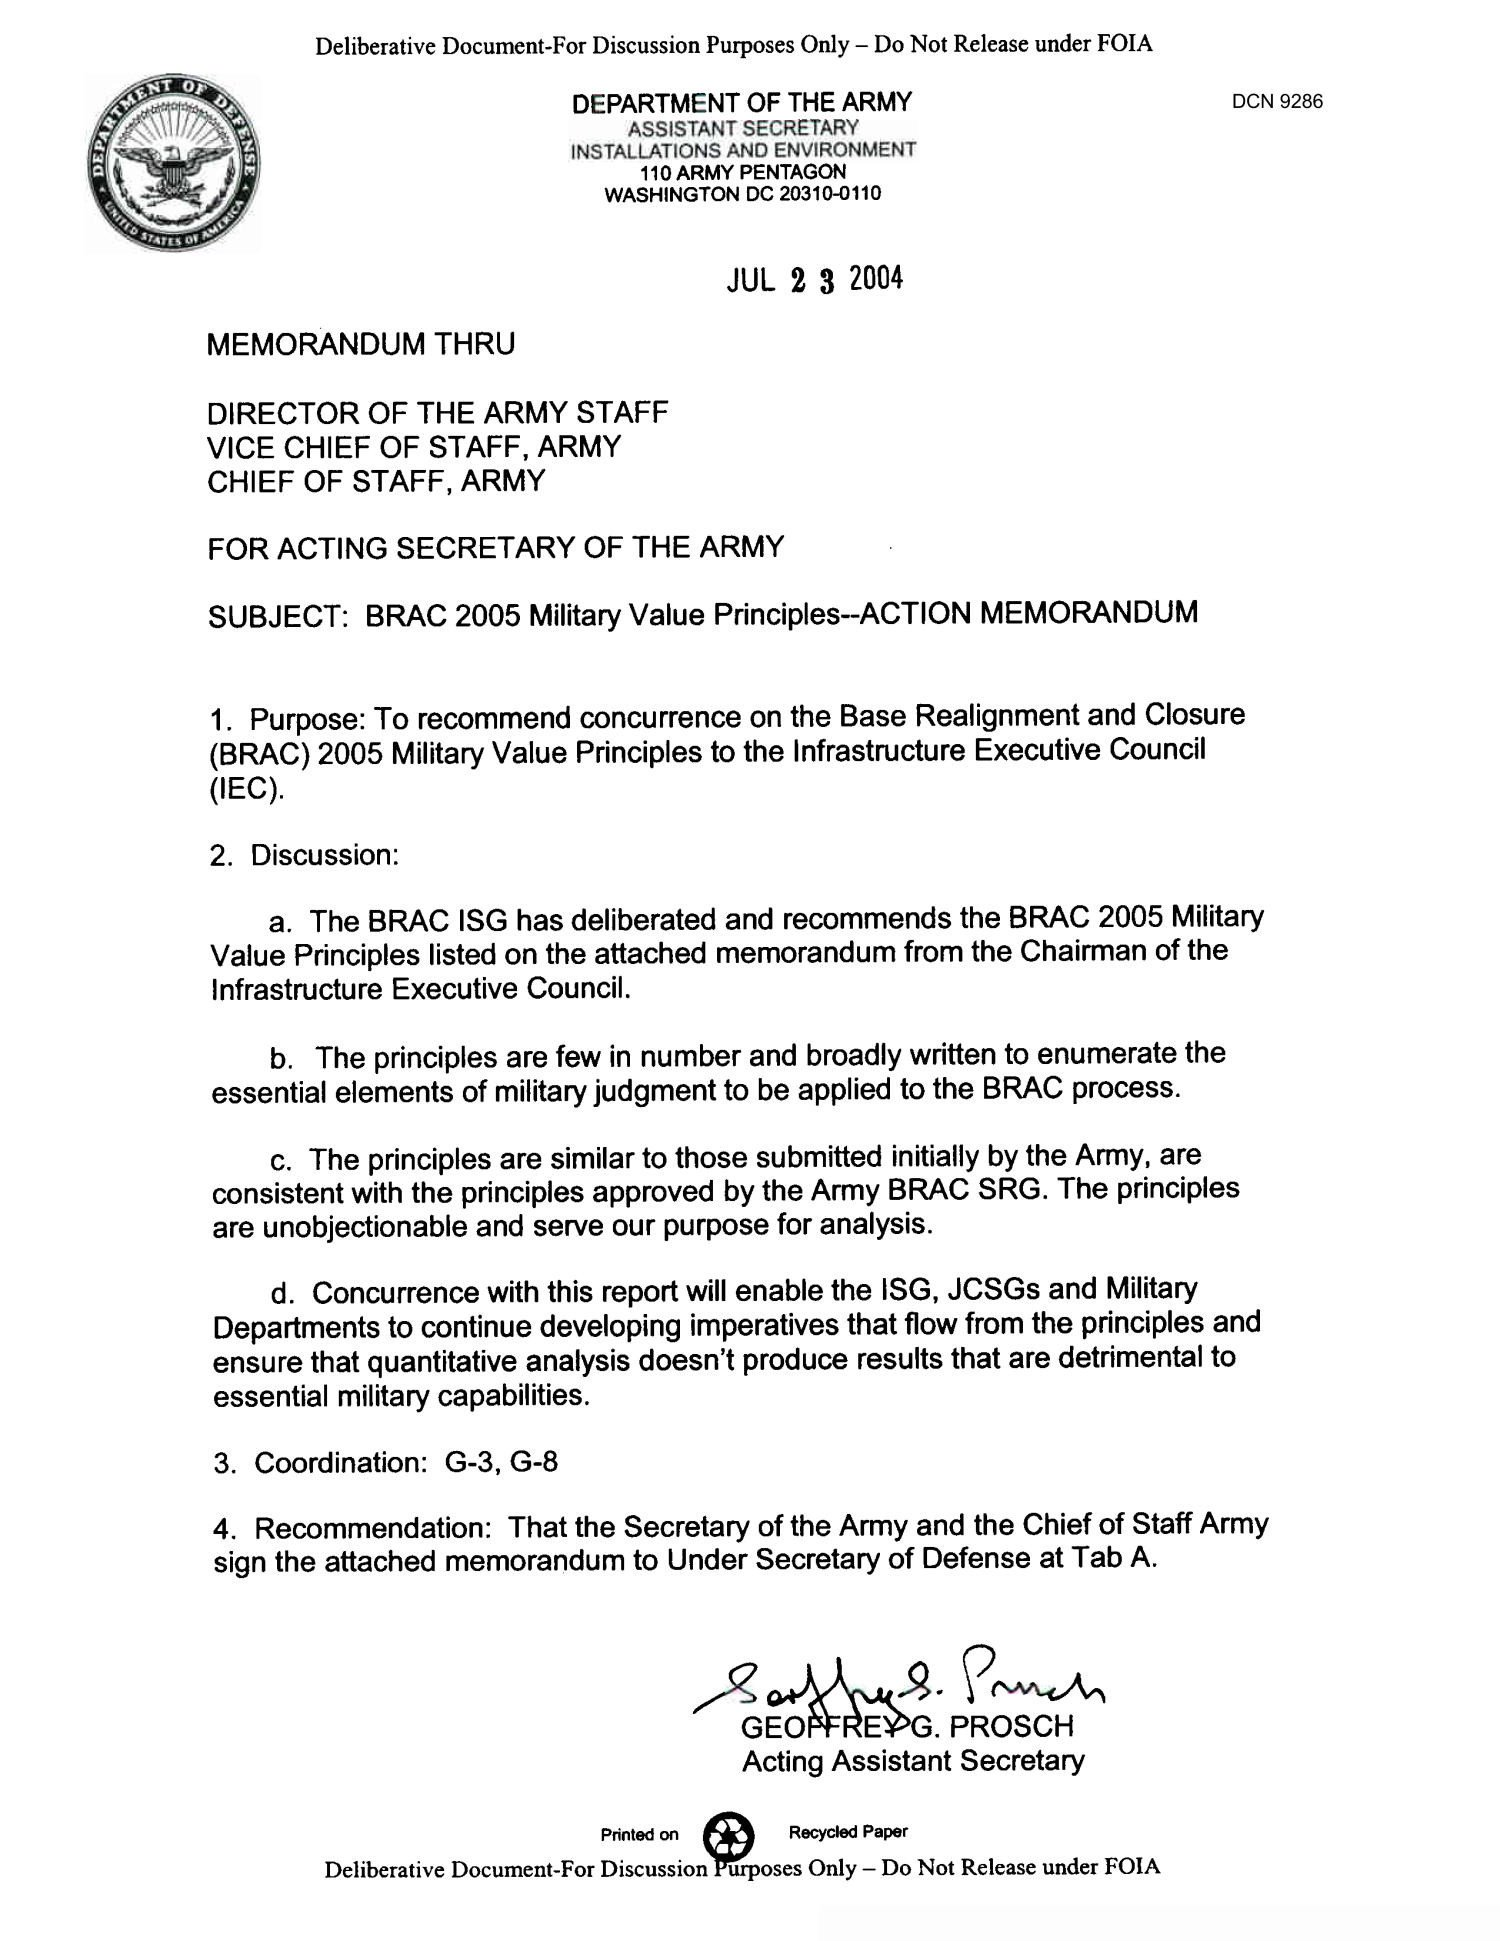 Army Memorandum for Record Template Memorandum for the Acting Secretary Of the Army Brac 2005